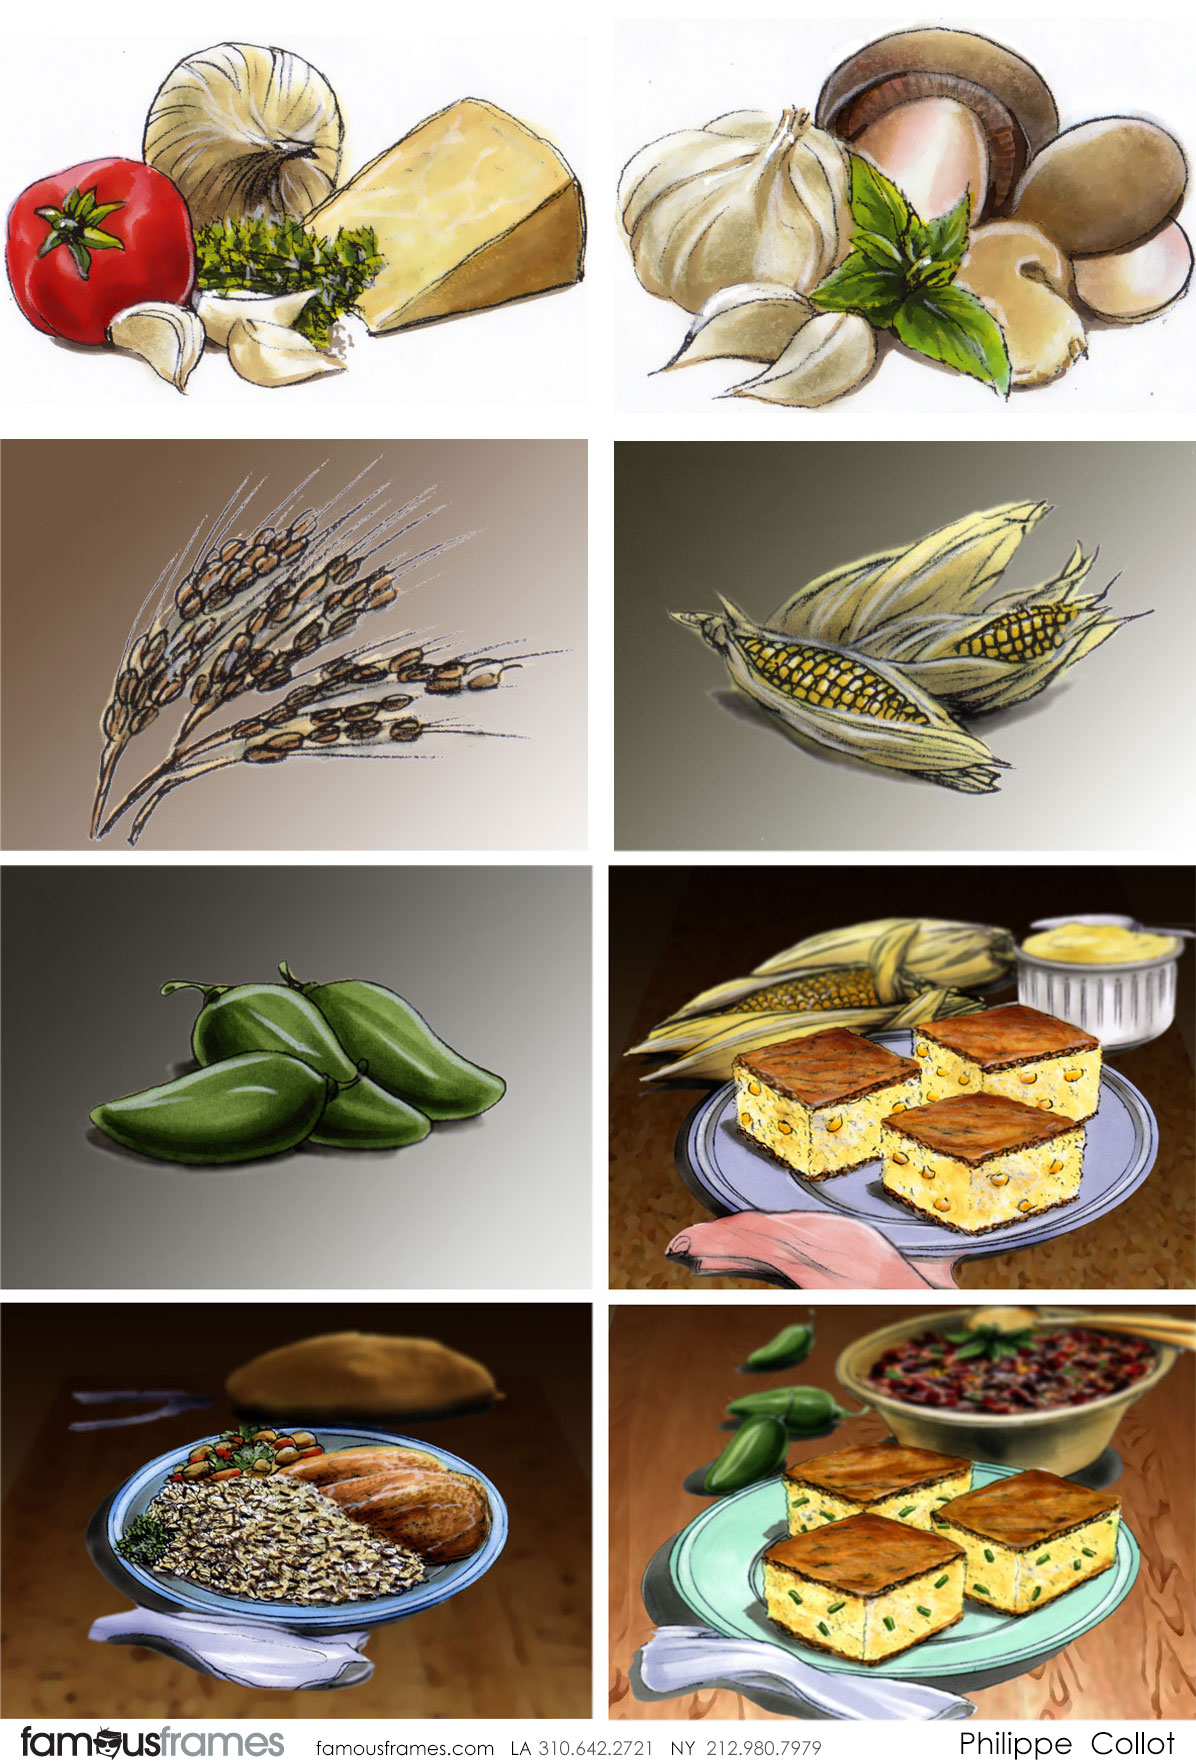 Philippe Collot*'s Food storyboard art (Image #113_13_1493407219)